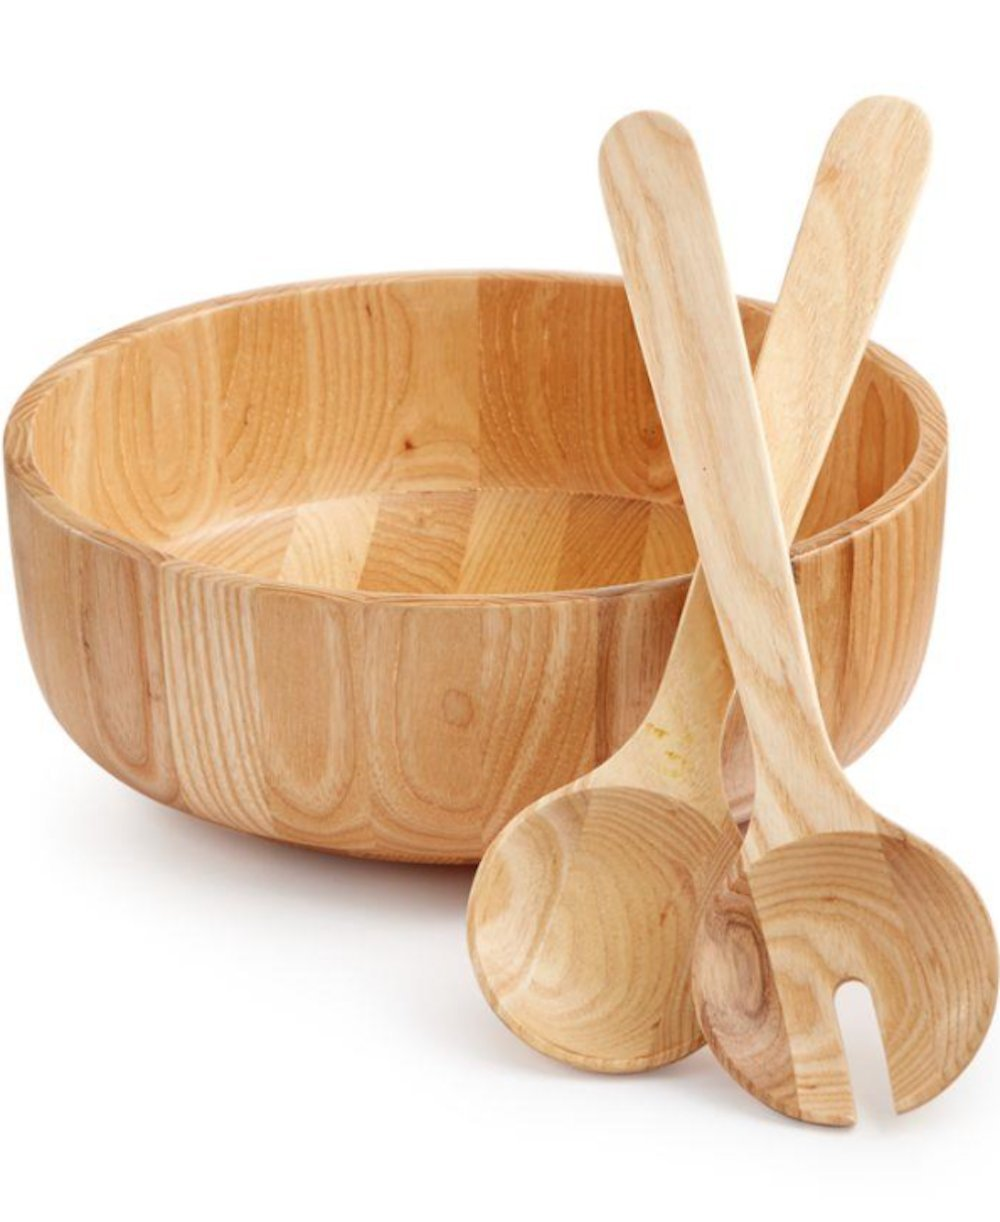 HOTEL COLLECTION WOOD SALAD SET